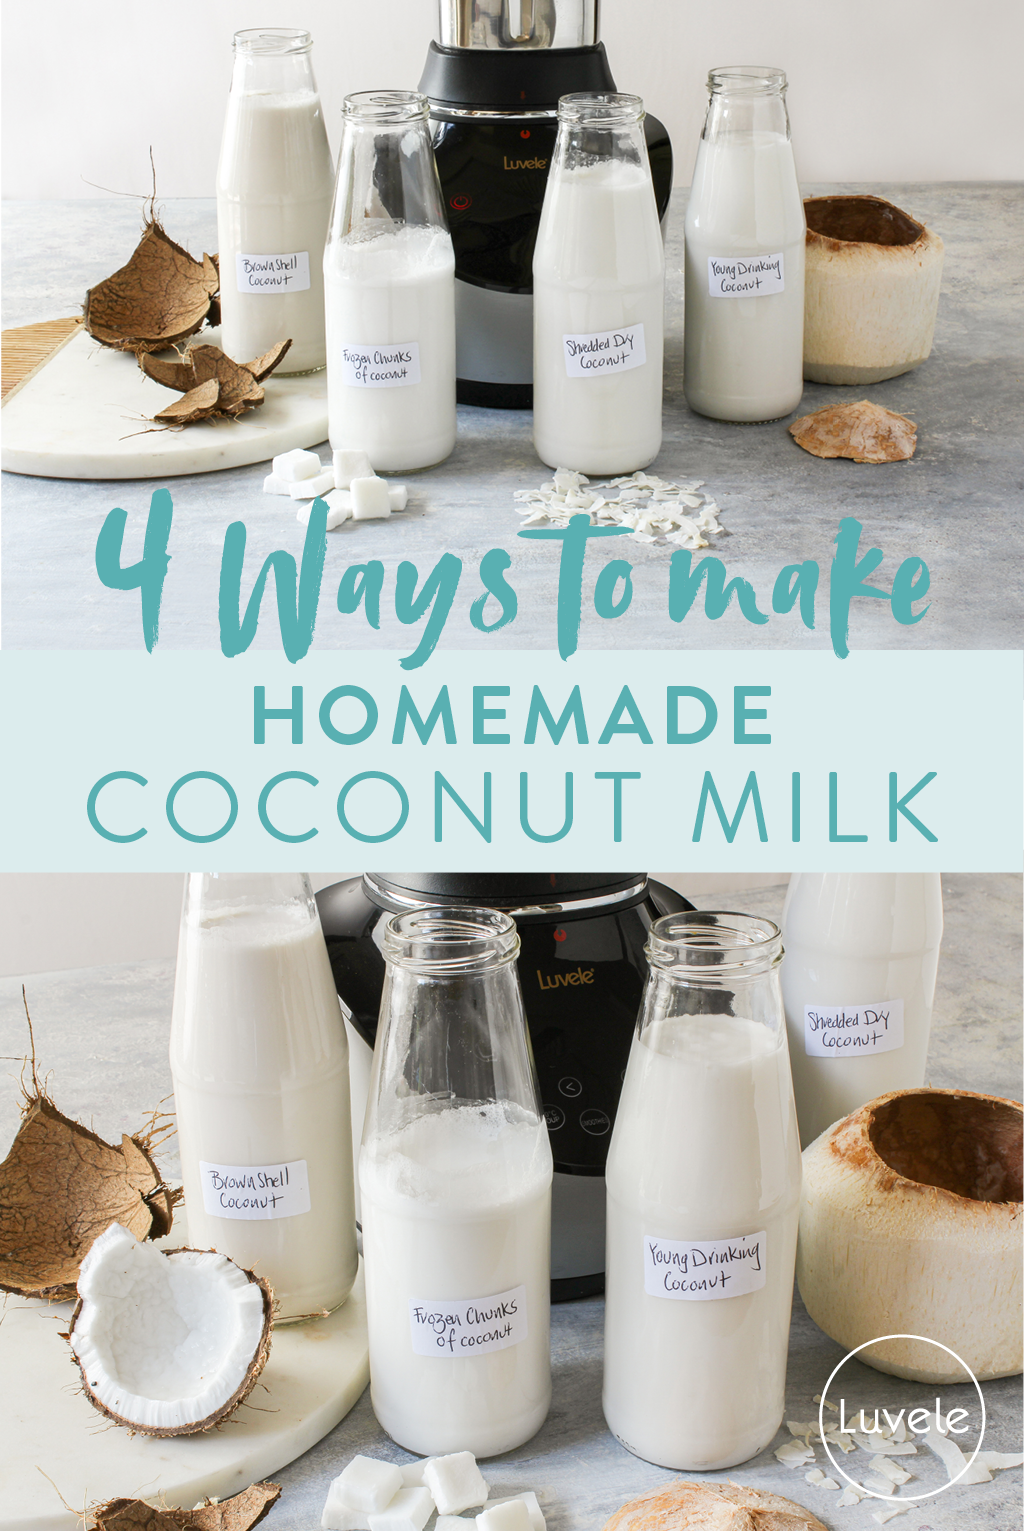 How to make coconut milk 4 ways - Pinterest